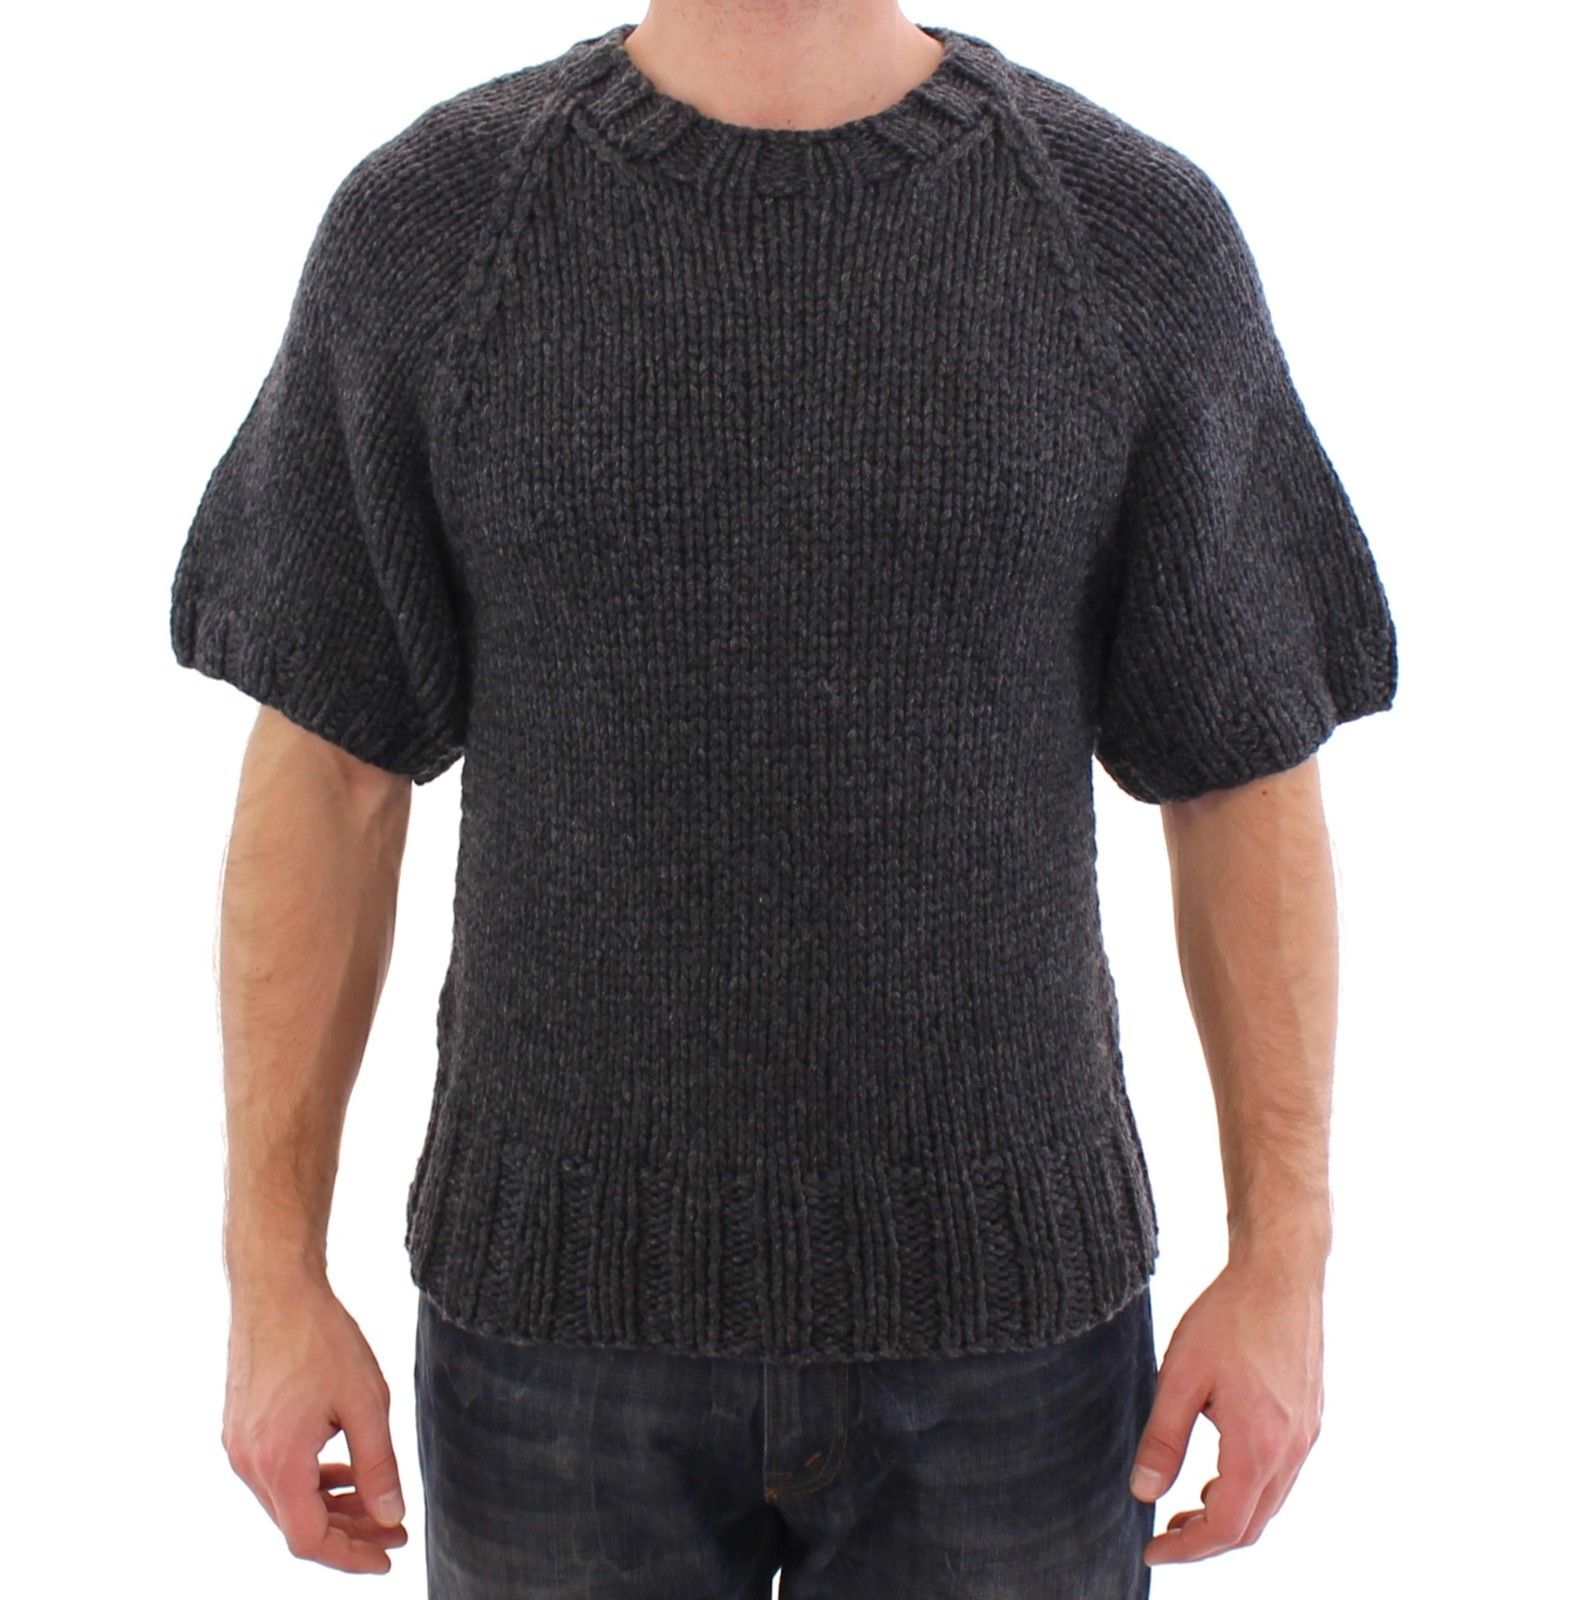 Dolce & Gabbana Women's Cashmere Knitted SS Sweater Gray GSS15008 - IT48 | M